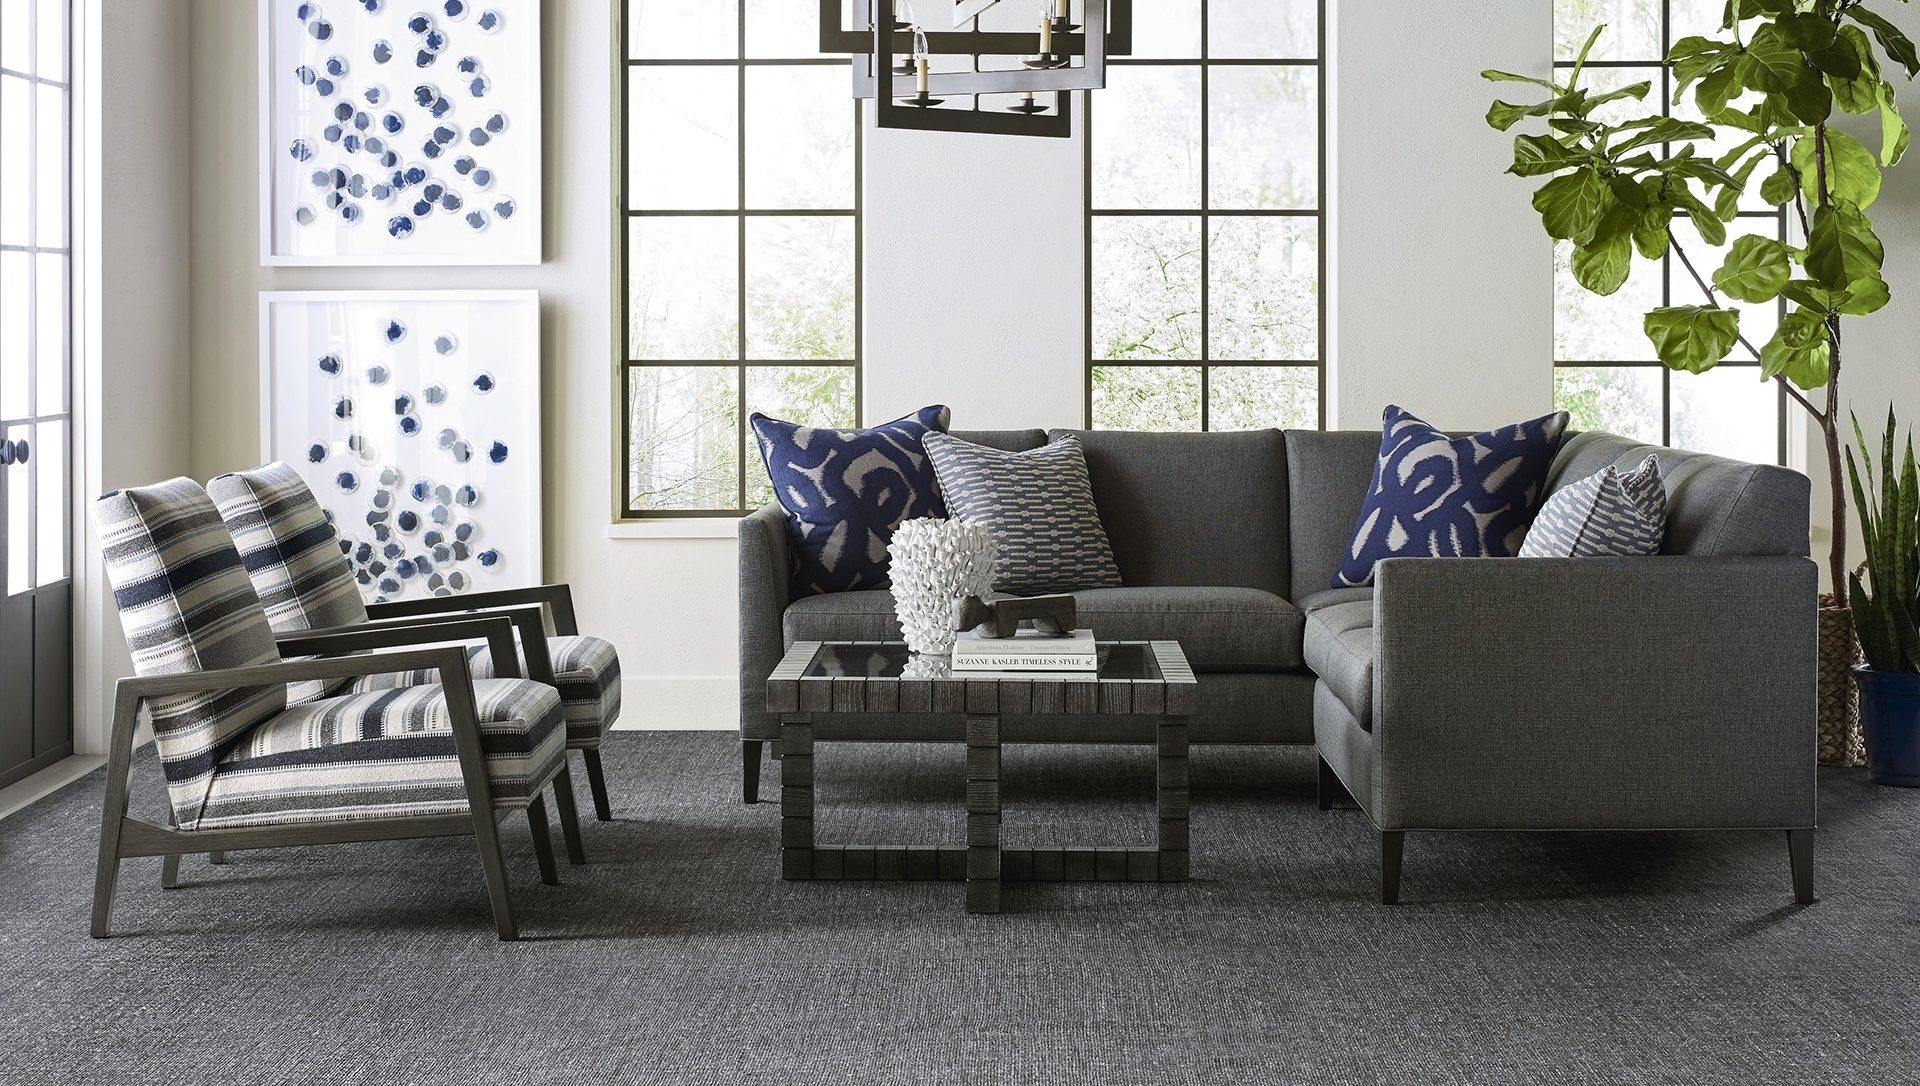 Most Recent Cr Laine Furniture For Norwood Upholstered Hostess Chairs (#8 of 20)